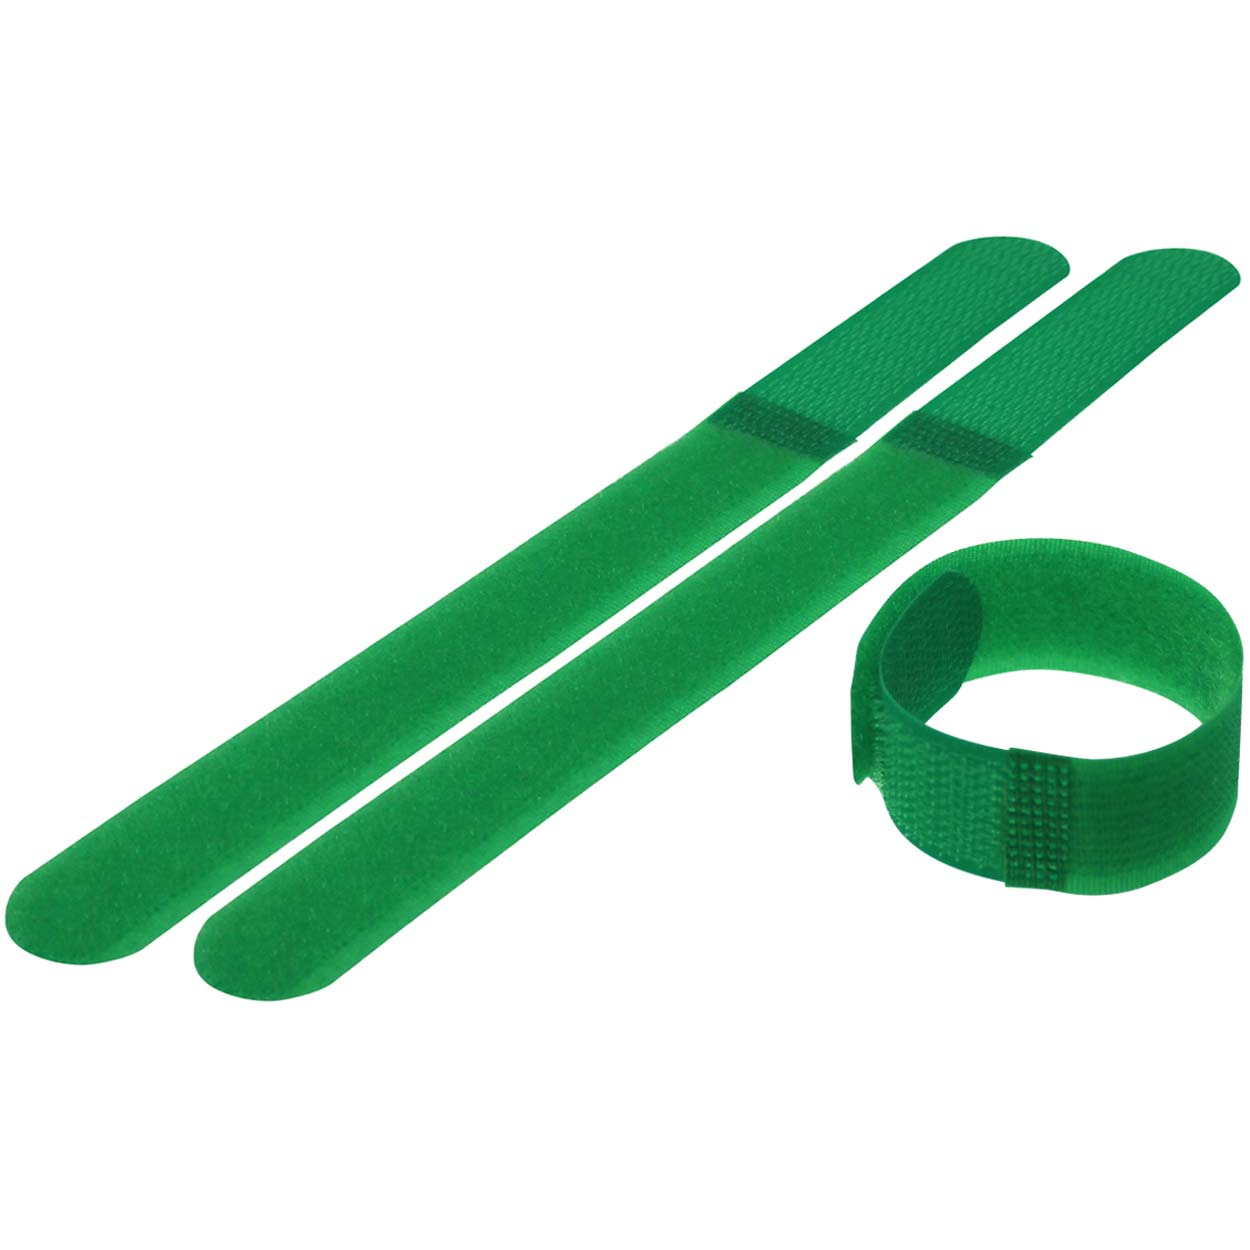 Hook and Loop Cable Tie Roll 7 inch Long x 0.78 inch Wide, 10pcs/pack - Green